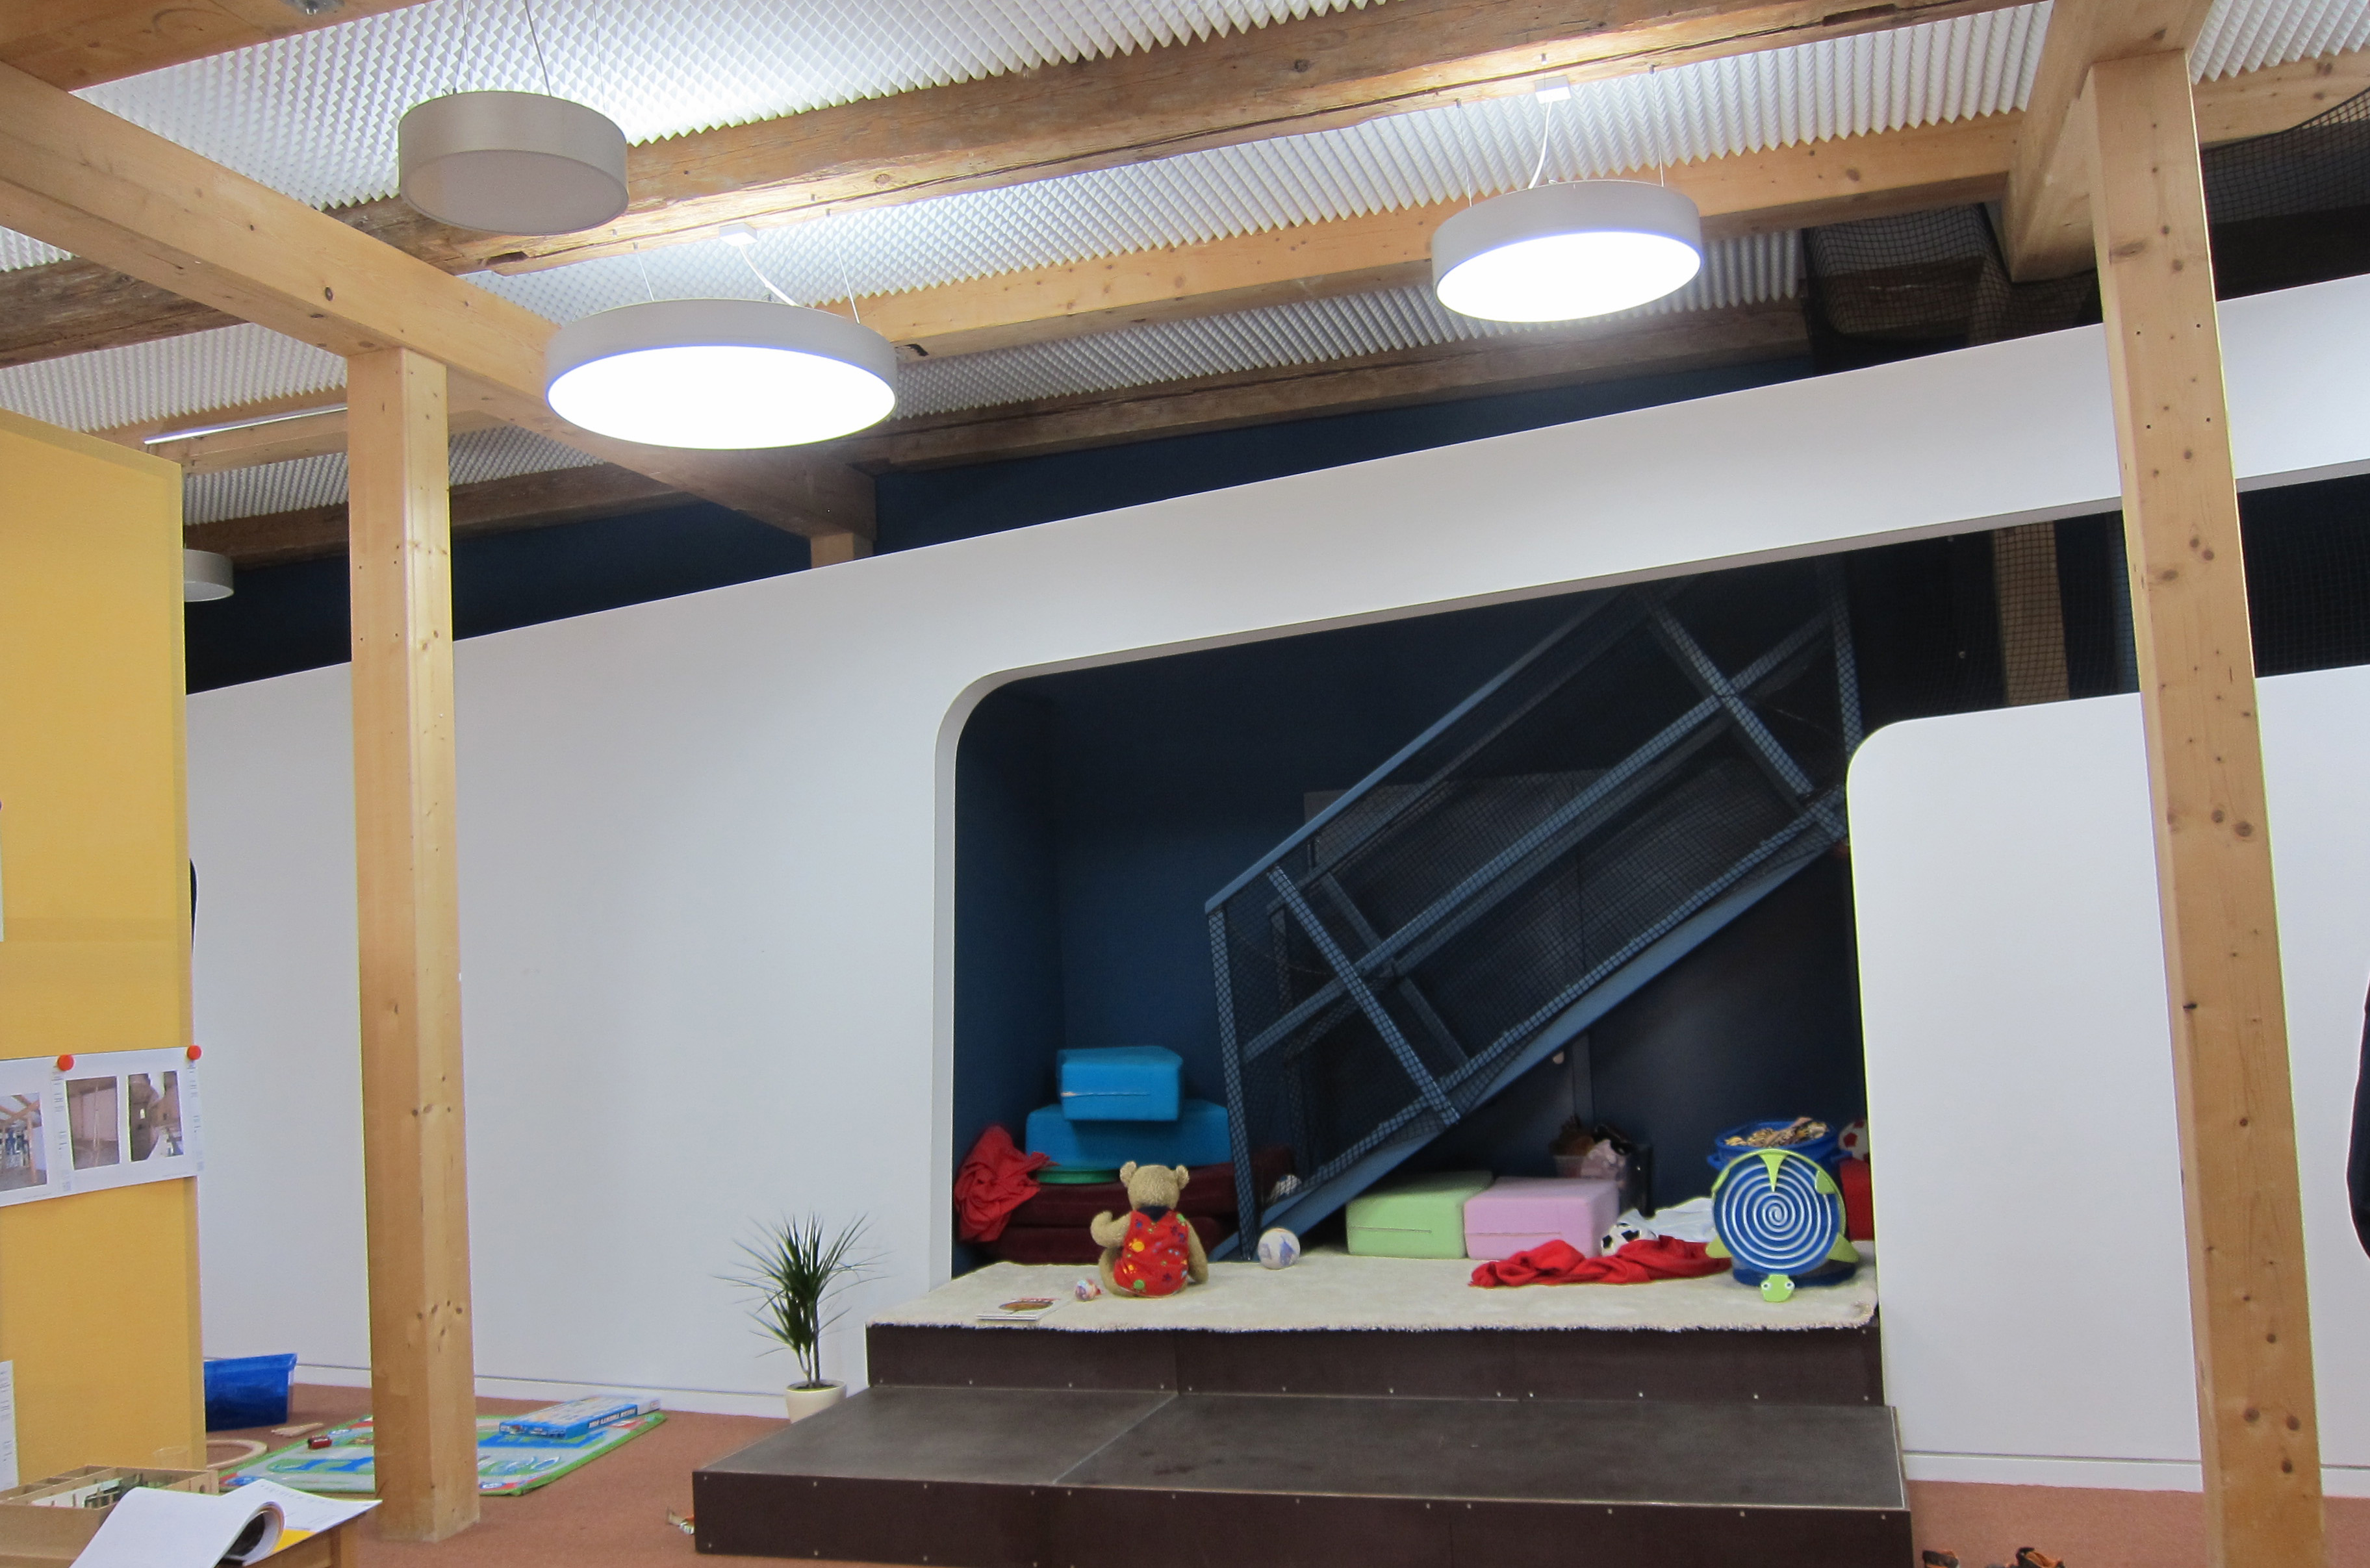 kindergartenbeleuchtung mit tageslichtlampen. Black Bedroom Furniture Sets. Home Design Ideas